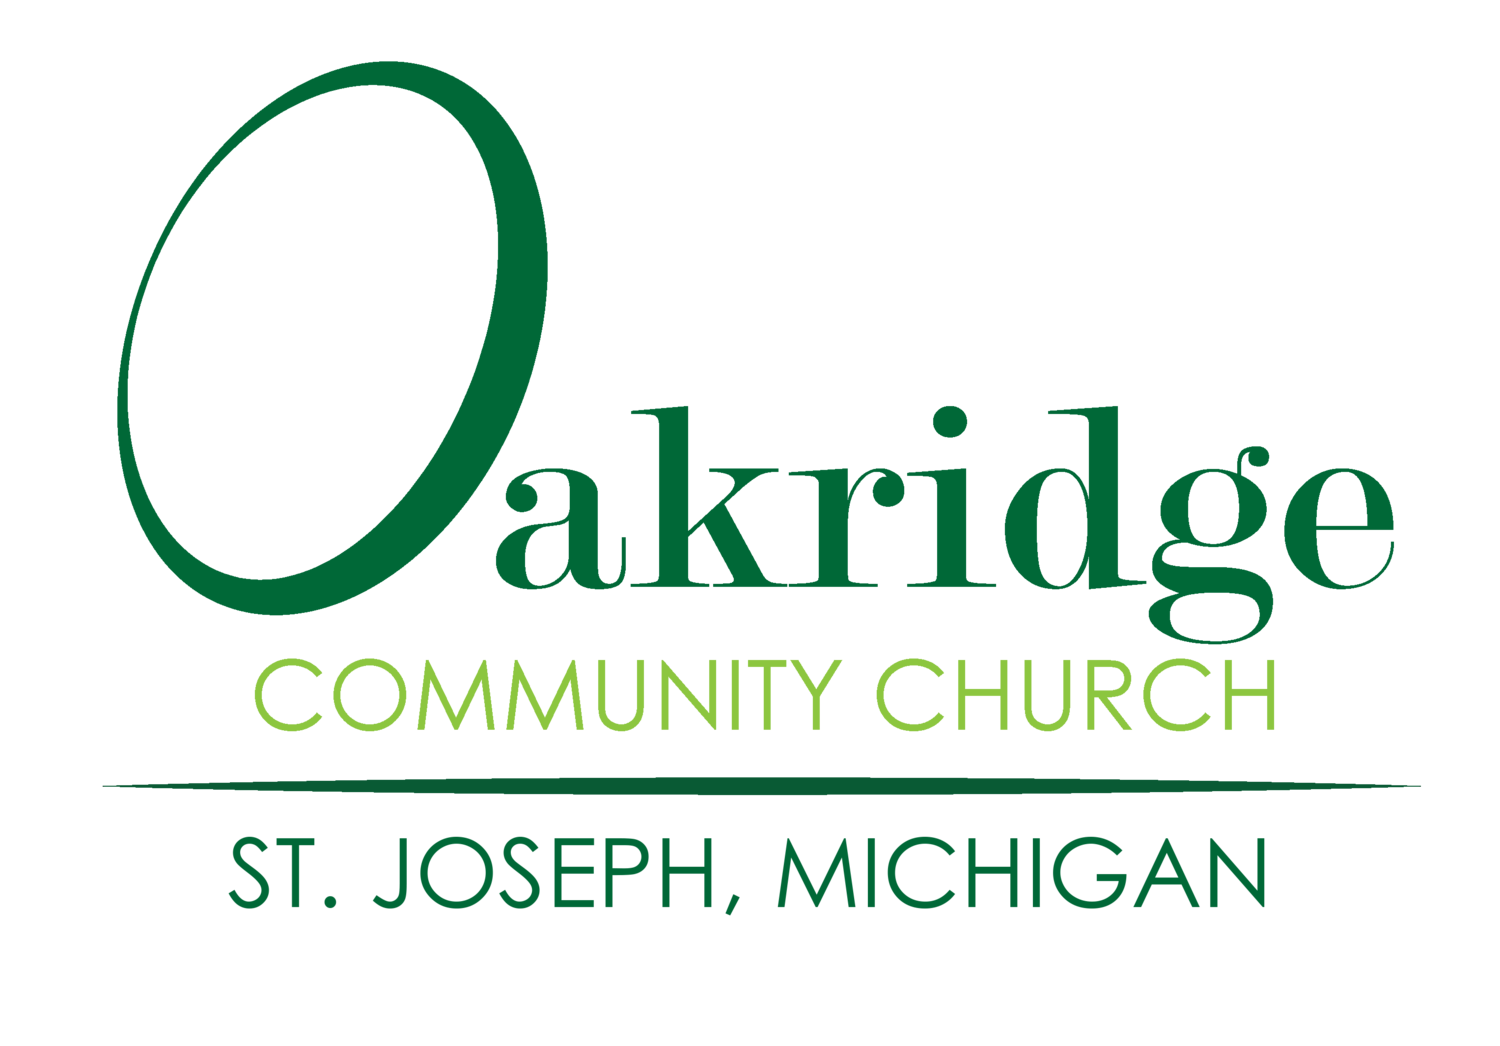 Oakridge Community Church